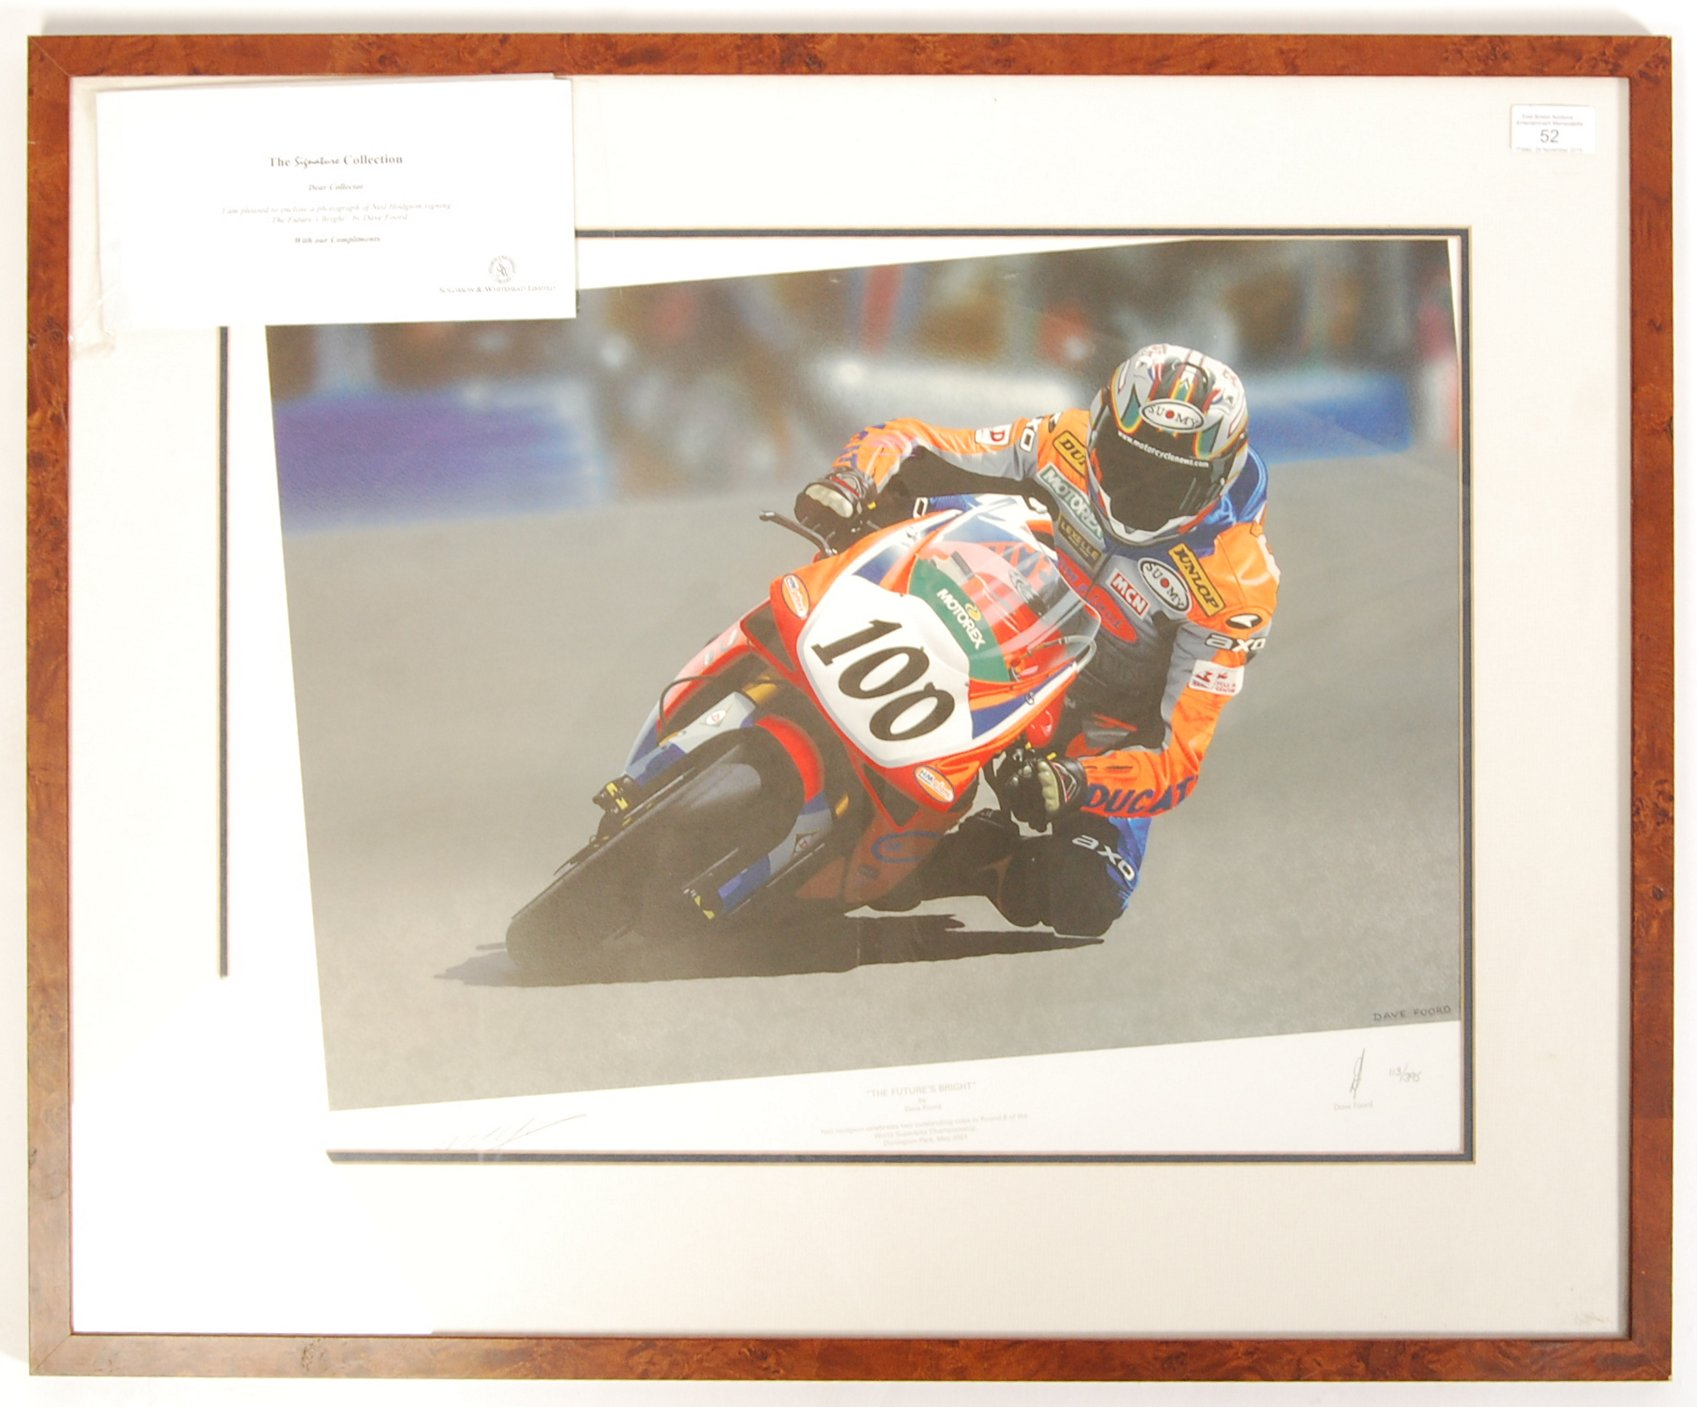 Lot 52 - ' THE FUTURE'S BEST ' BY DAVE FORD AUTOGRAPHED NEI